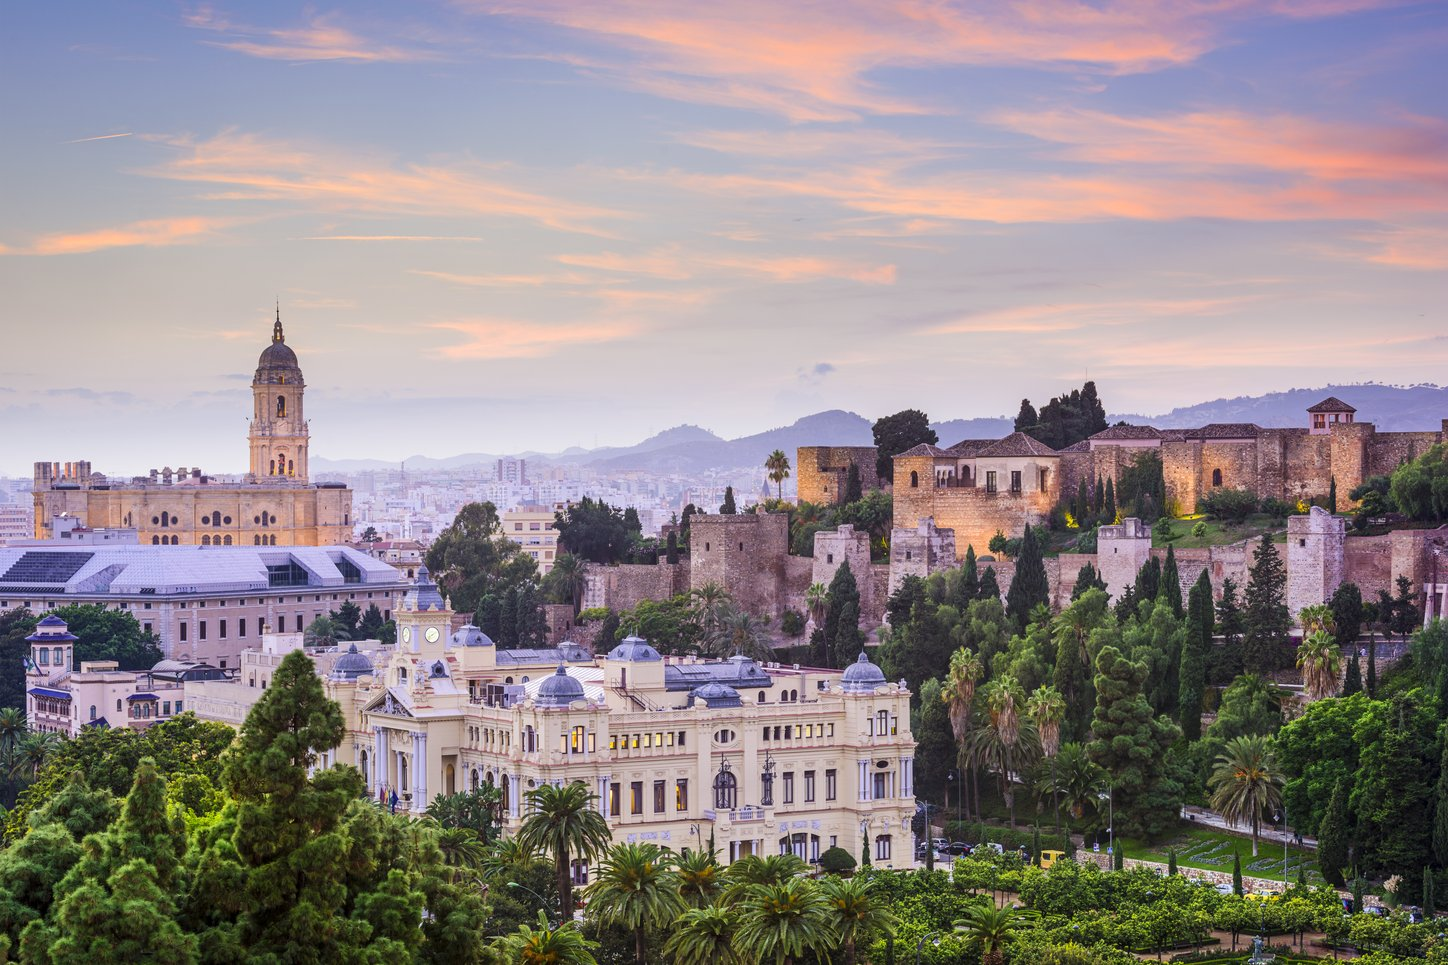 City view of Malaga, Spain